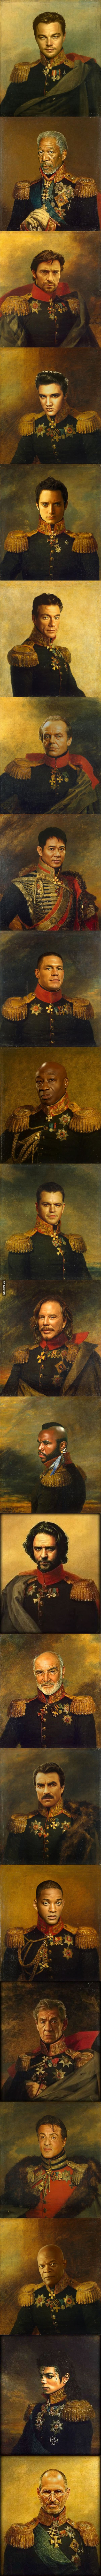 If Celebrities Were 19th Century Military Generals.